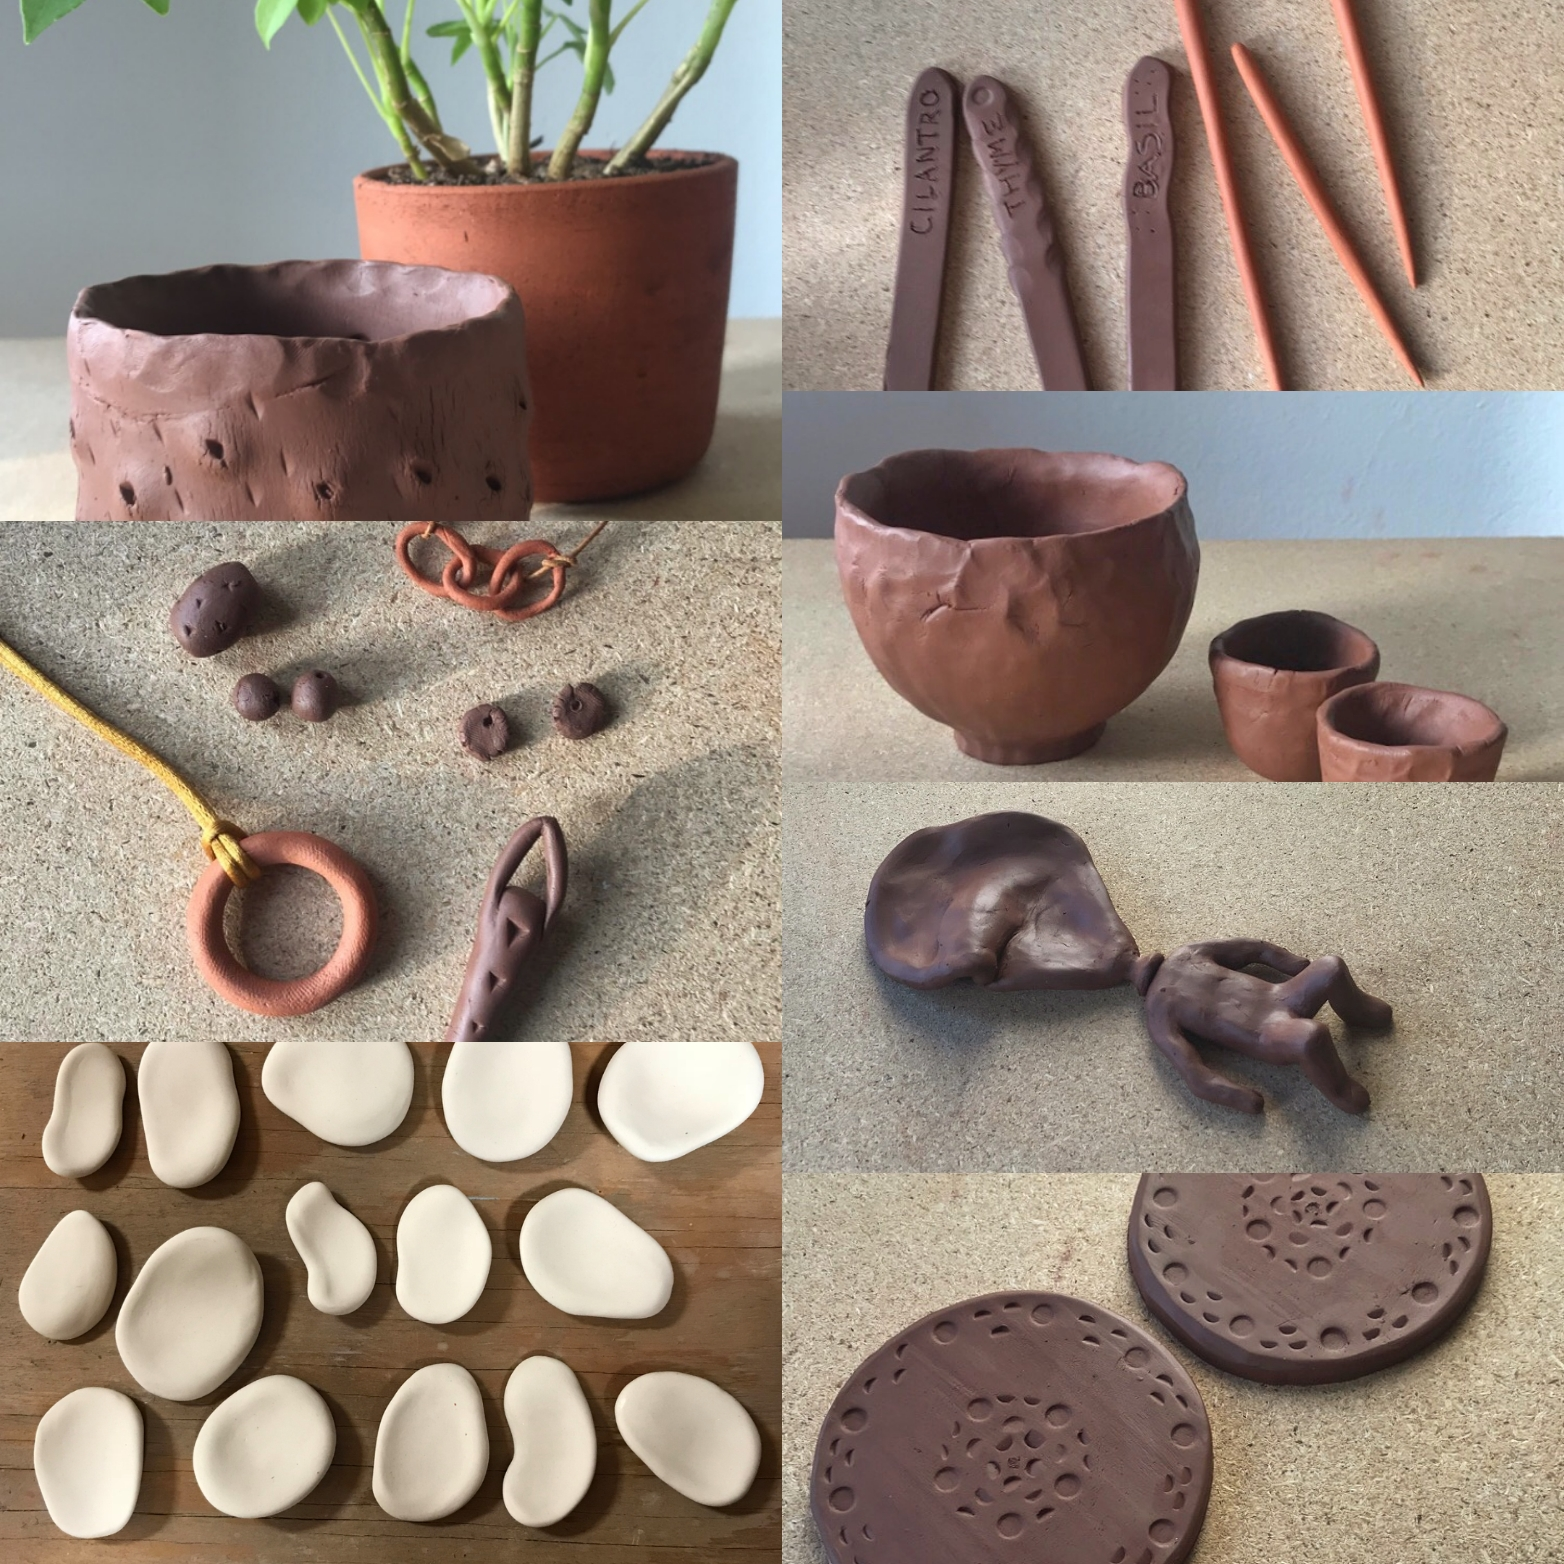 stay-at-home Clay at Home!